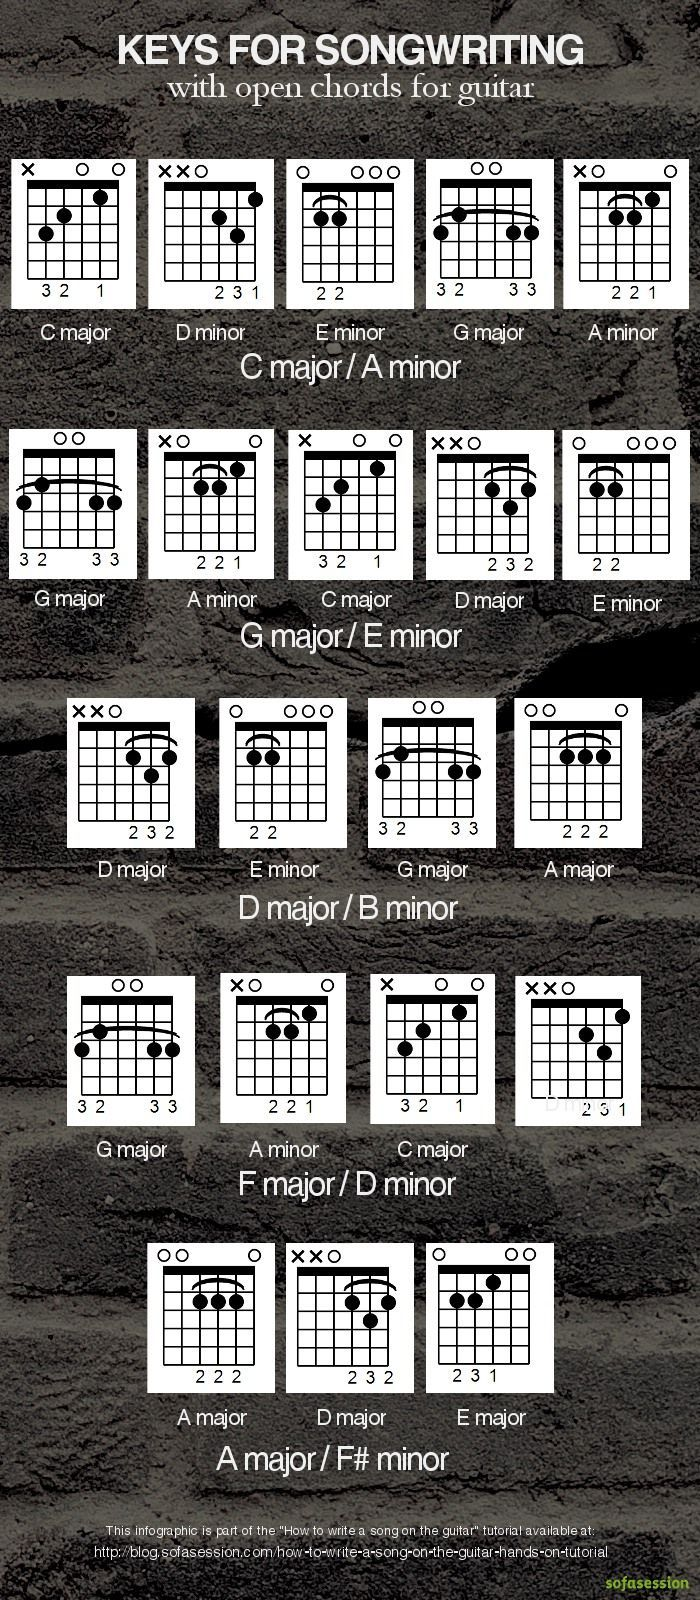 Keys With Open Chords For Writing A Song On The Guitar Chords